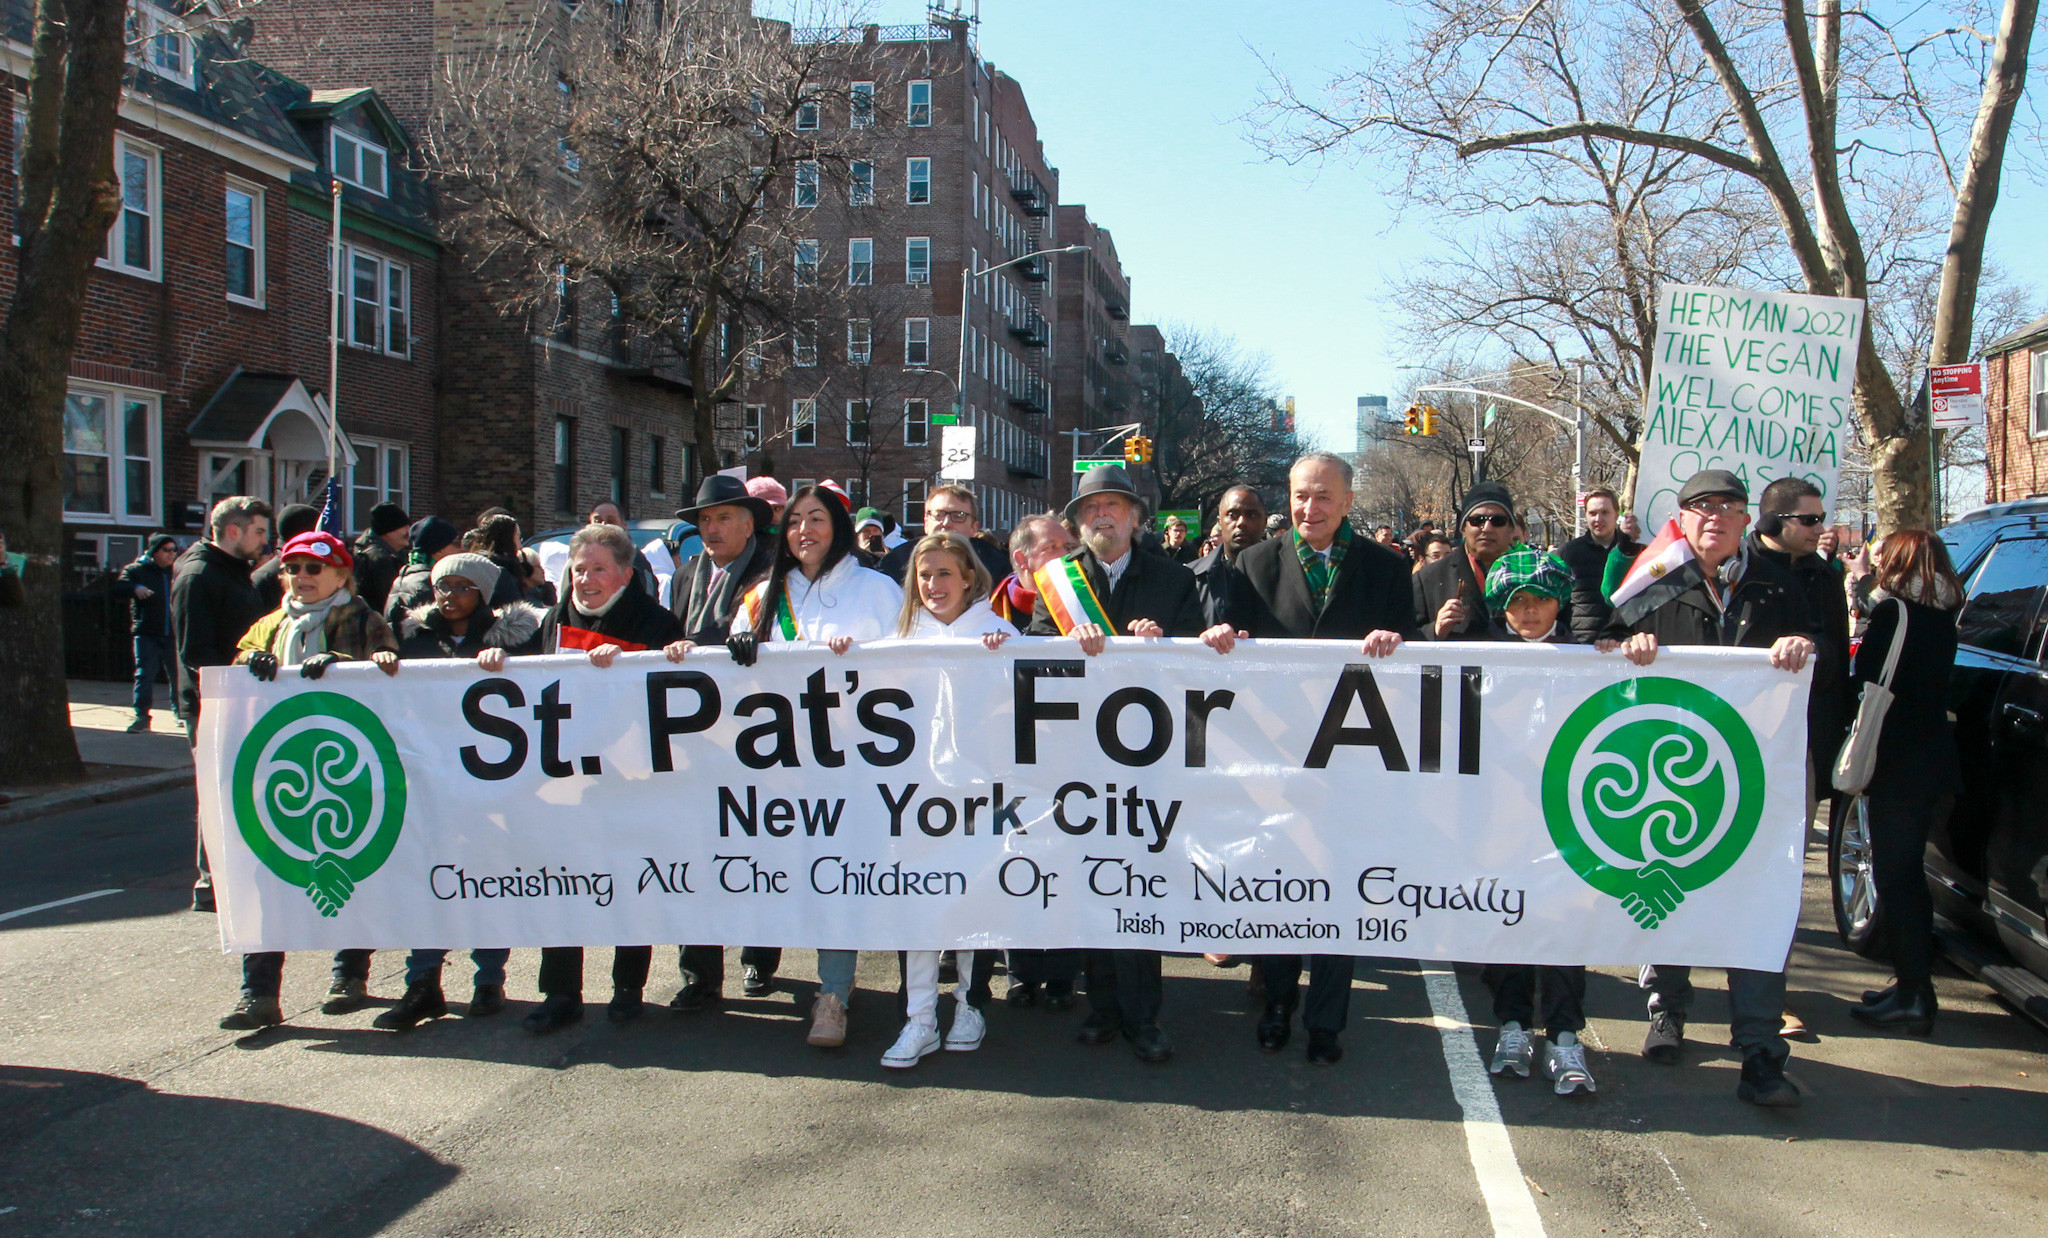 St. Pat's for All parade still going strong after celebrating LGBT people for two decades